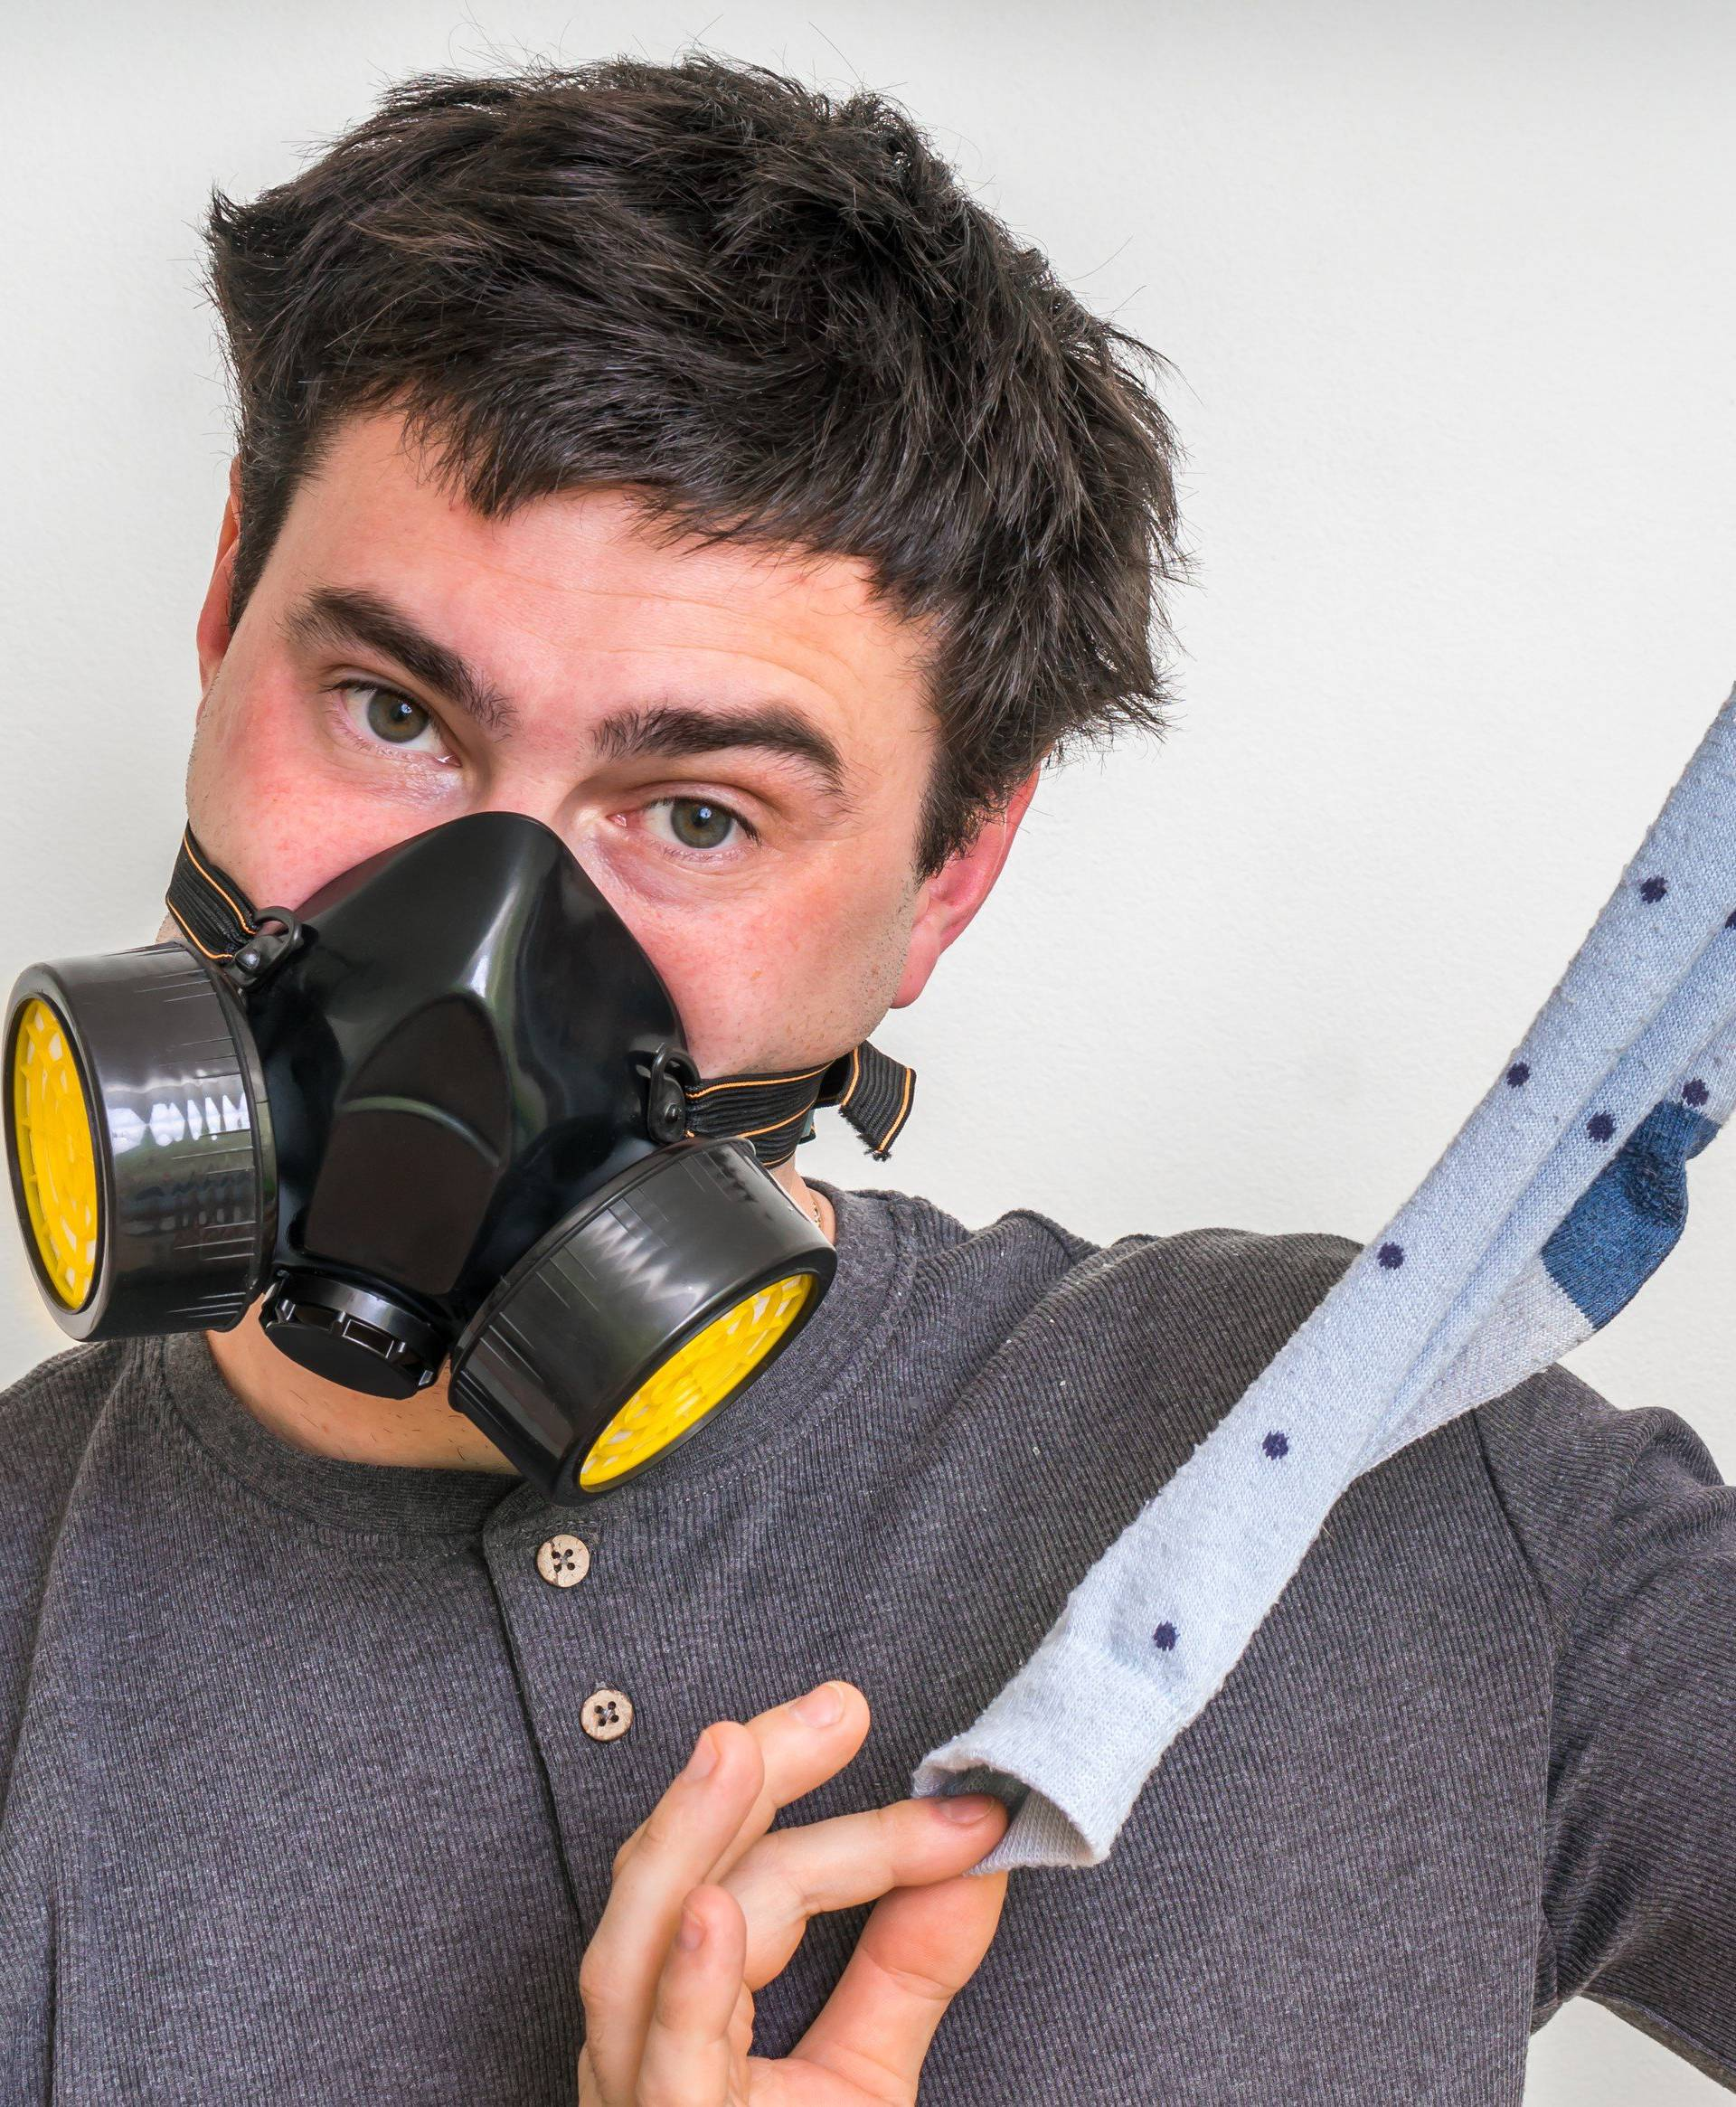 Man with gas mask is holding dirty stinky sock